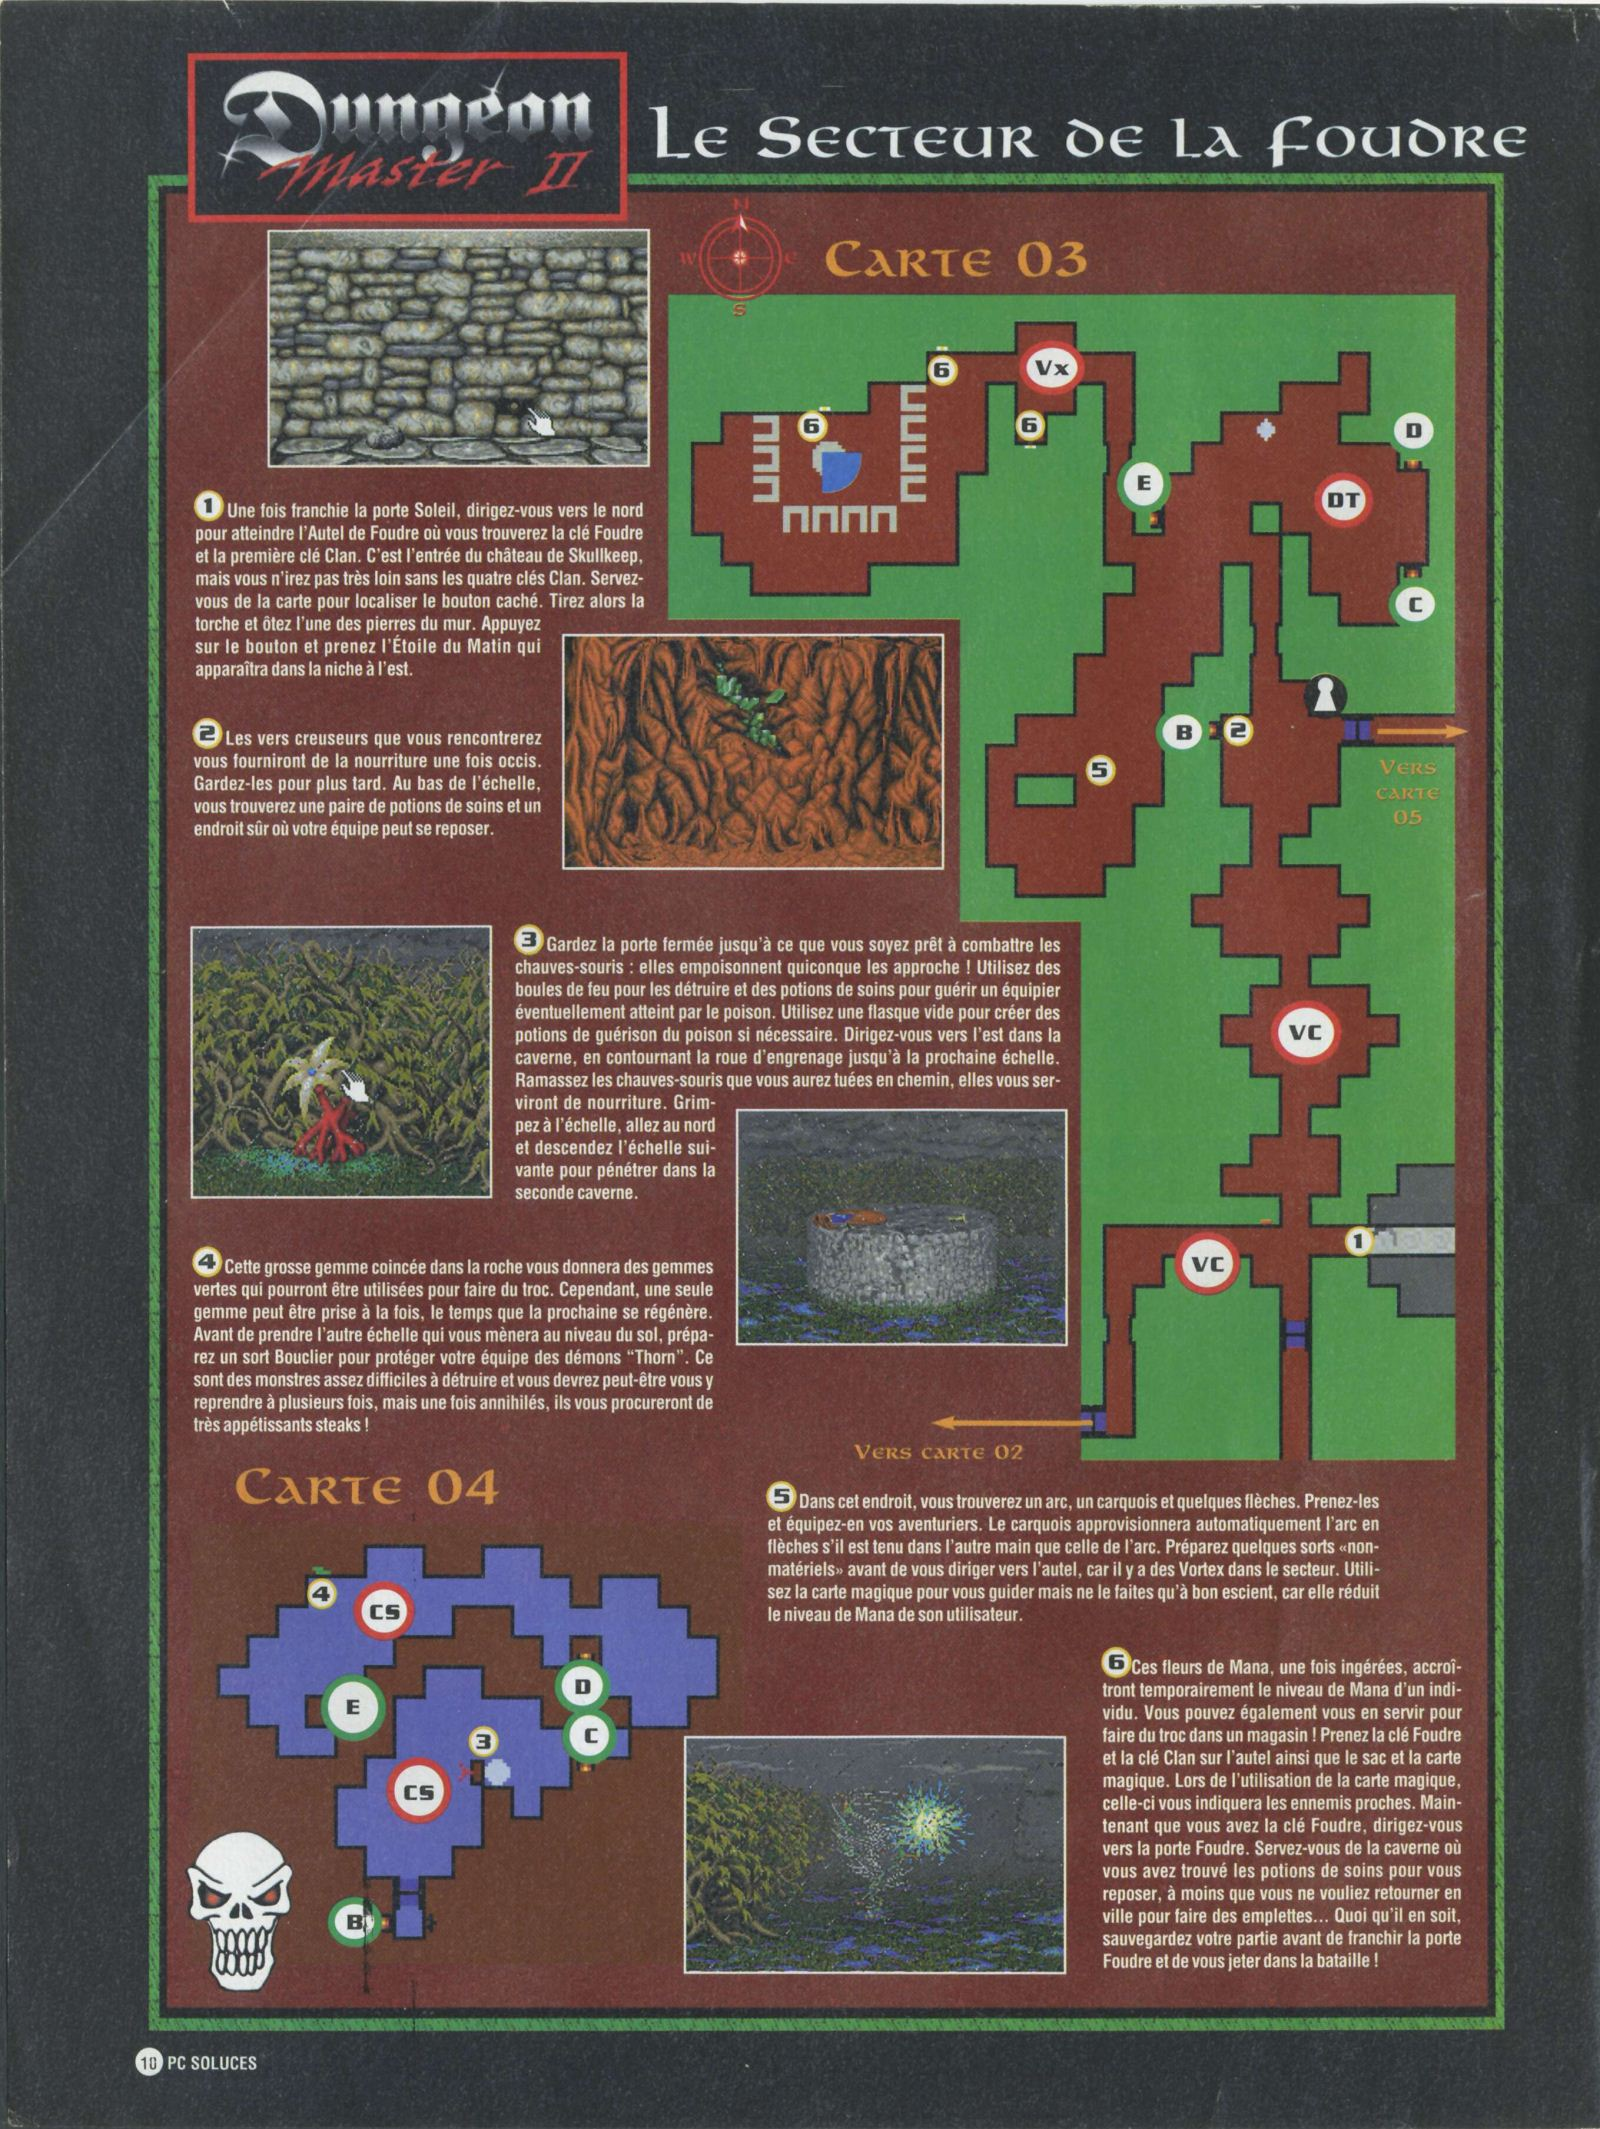 Dungeon Master II solution published in French magazine 'PC Soluces', Issue#1, February-March 1996, Page10